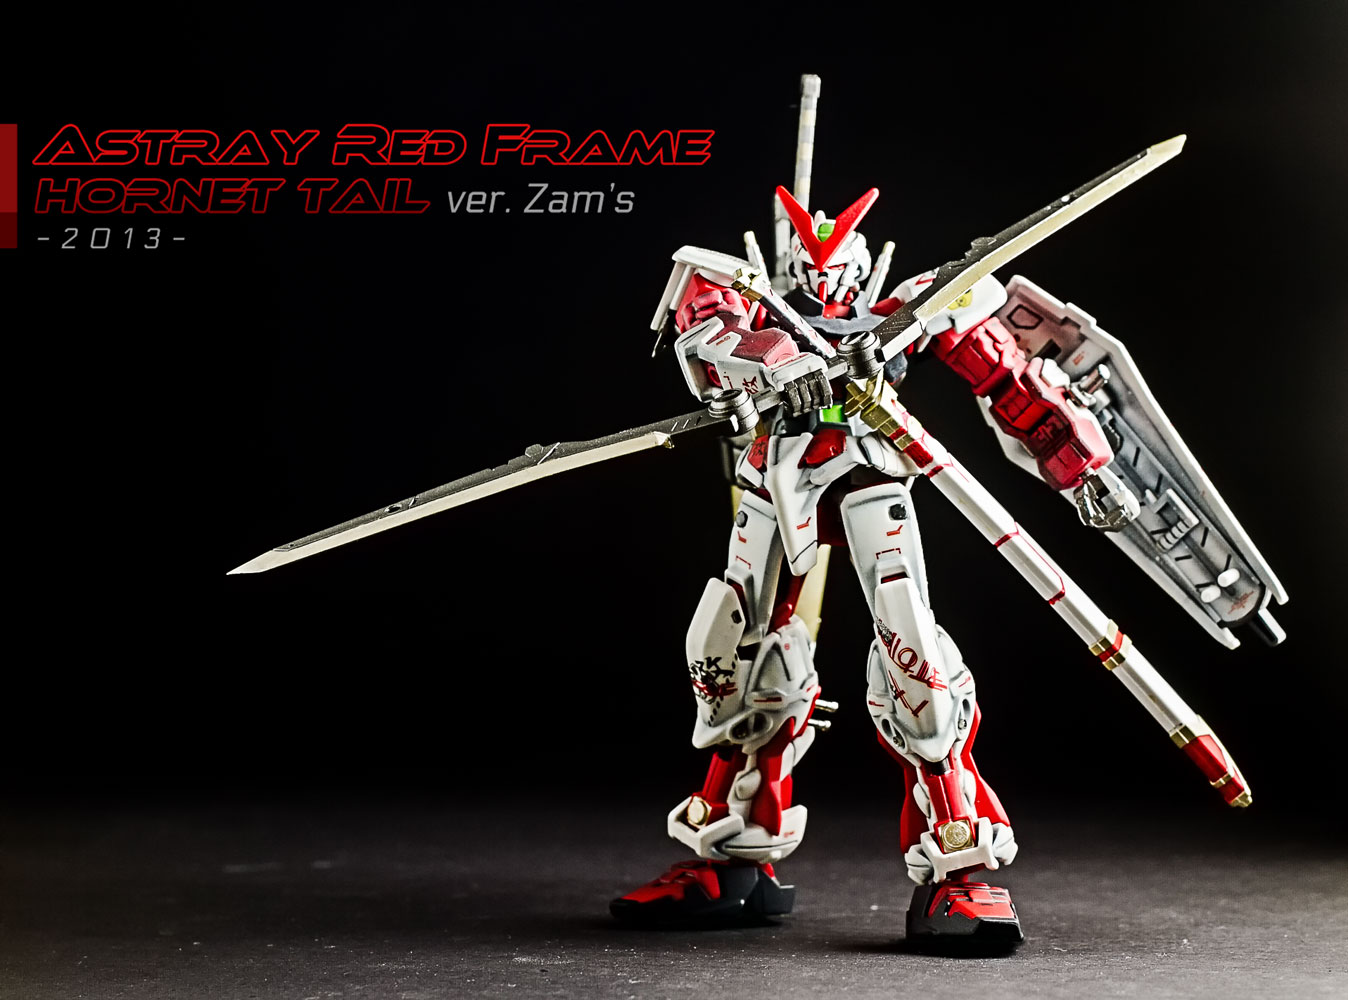 Astray Gundam Wallpaper Share my Gundam Art Works